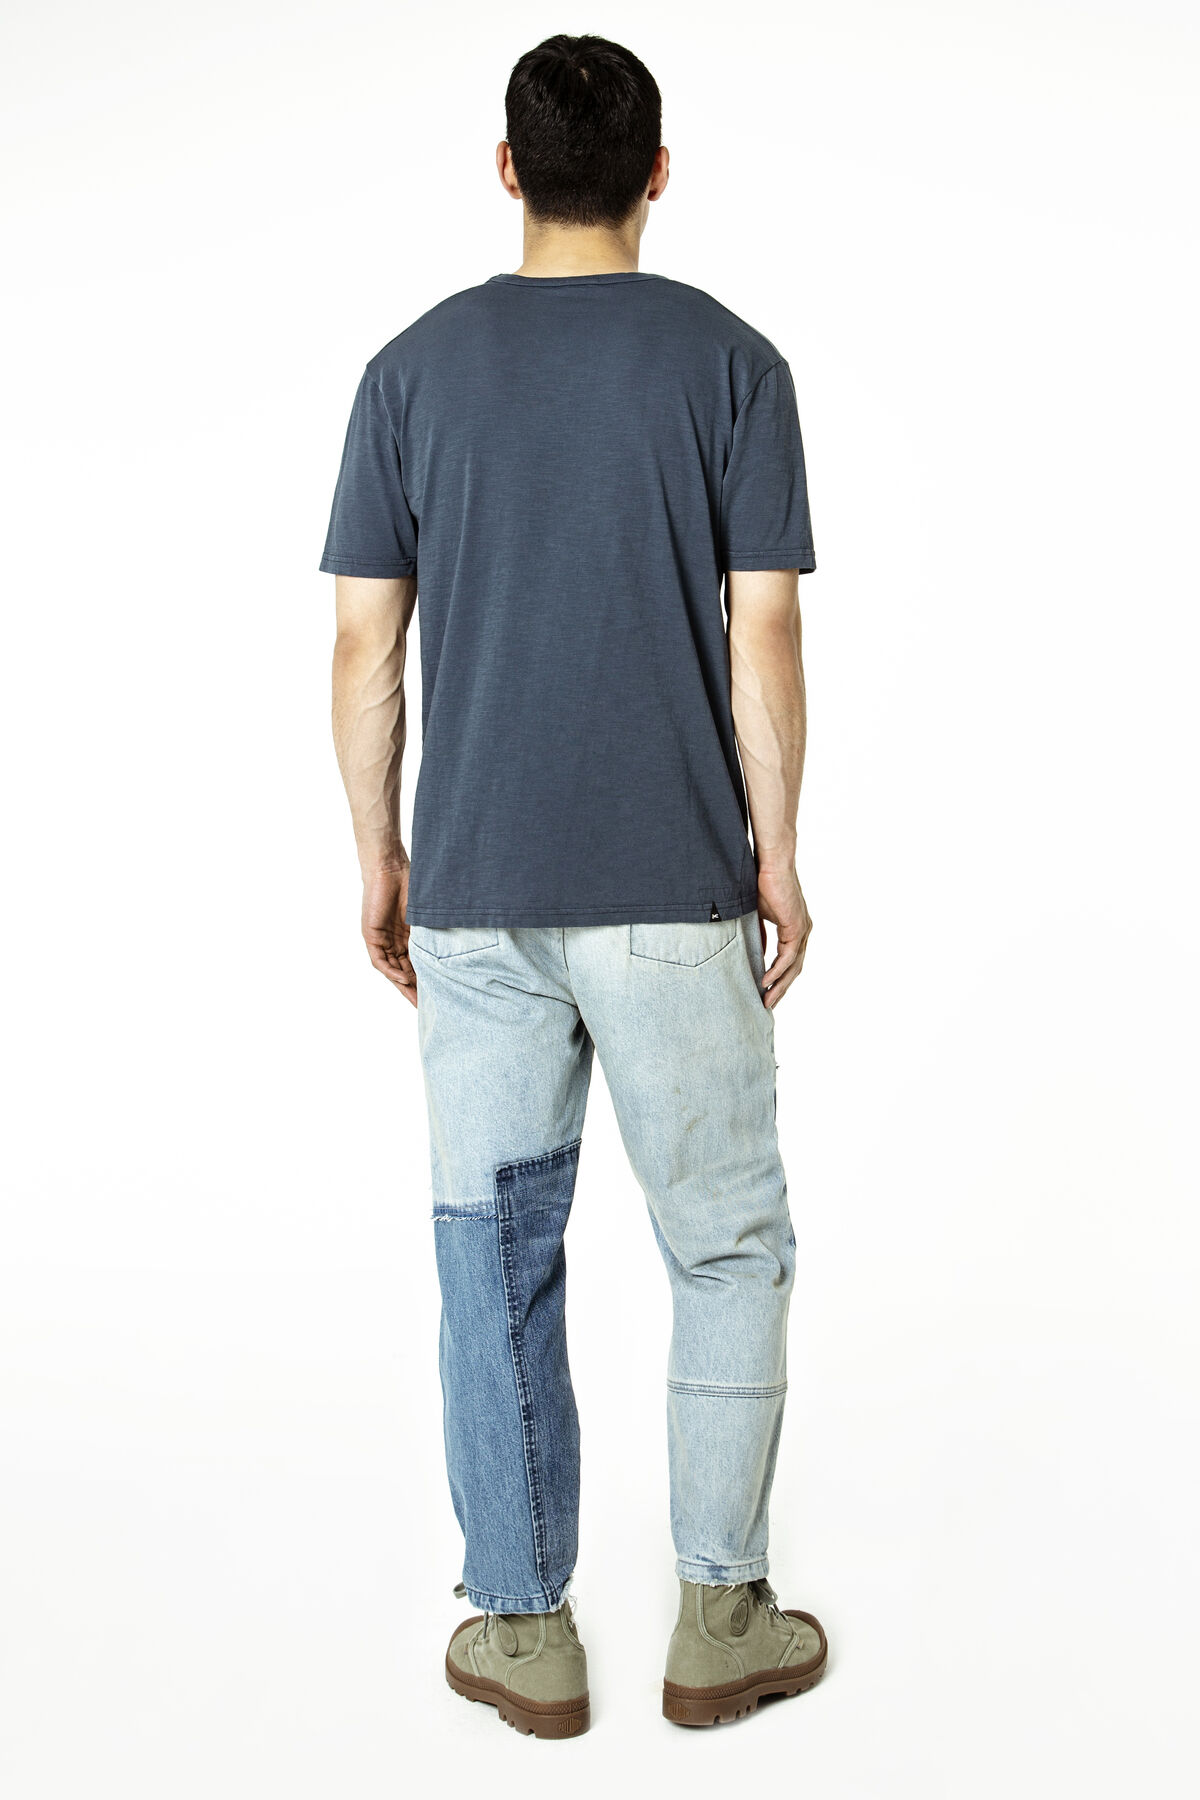 FATIGUE TROUSER Multi-patch Denim - Relaxed Fit